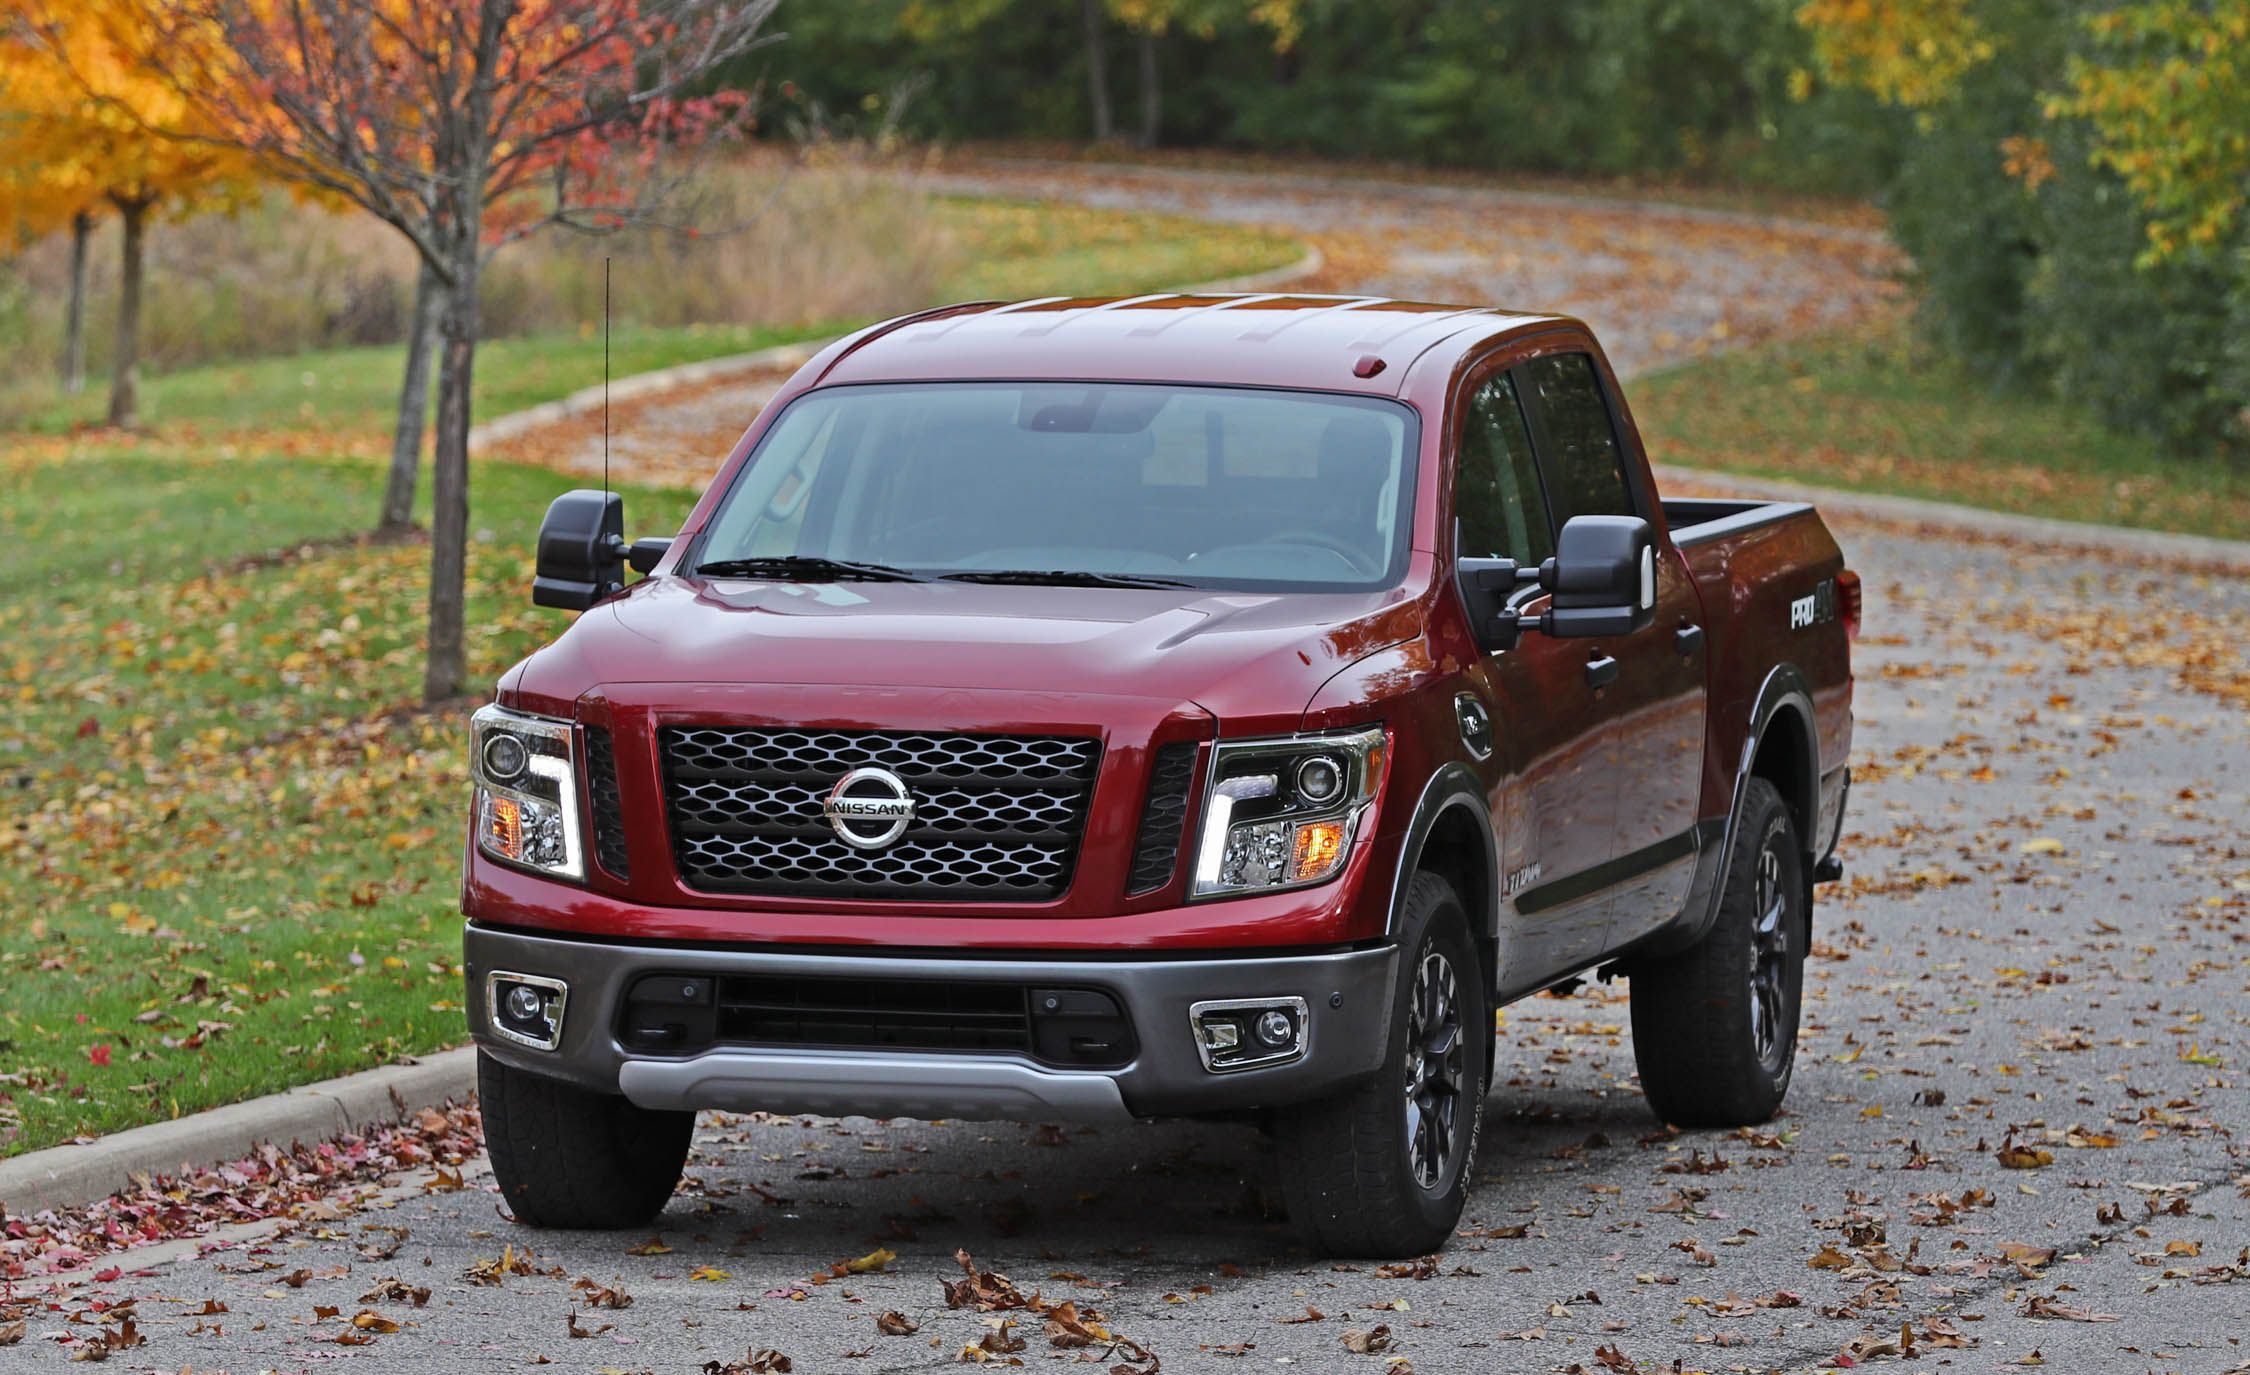 2018 nissan titan nissanconnect infotainment review car and driver. Black Bedroom Furniture Sets. Home Design Ideas